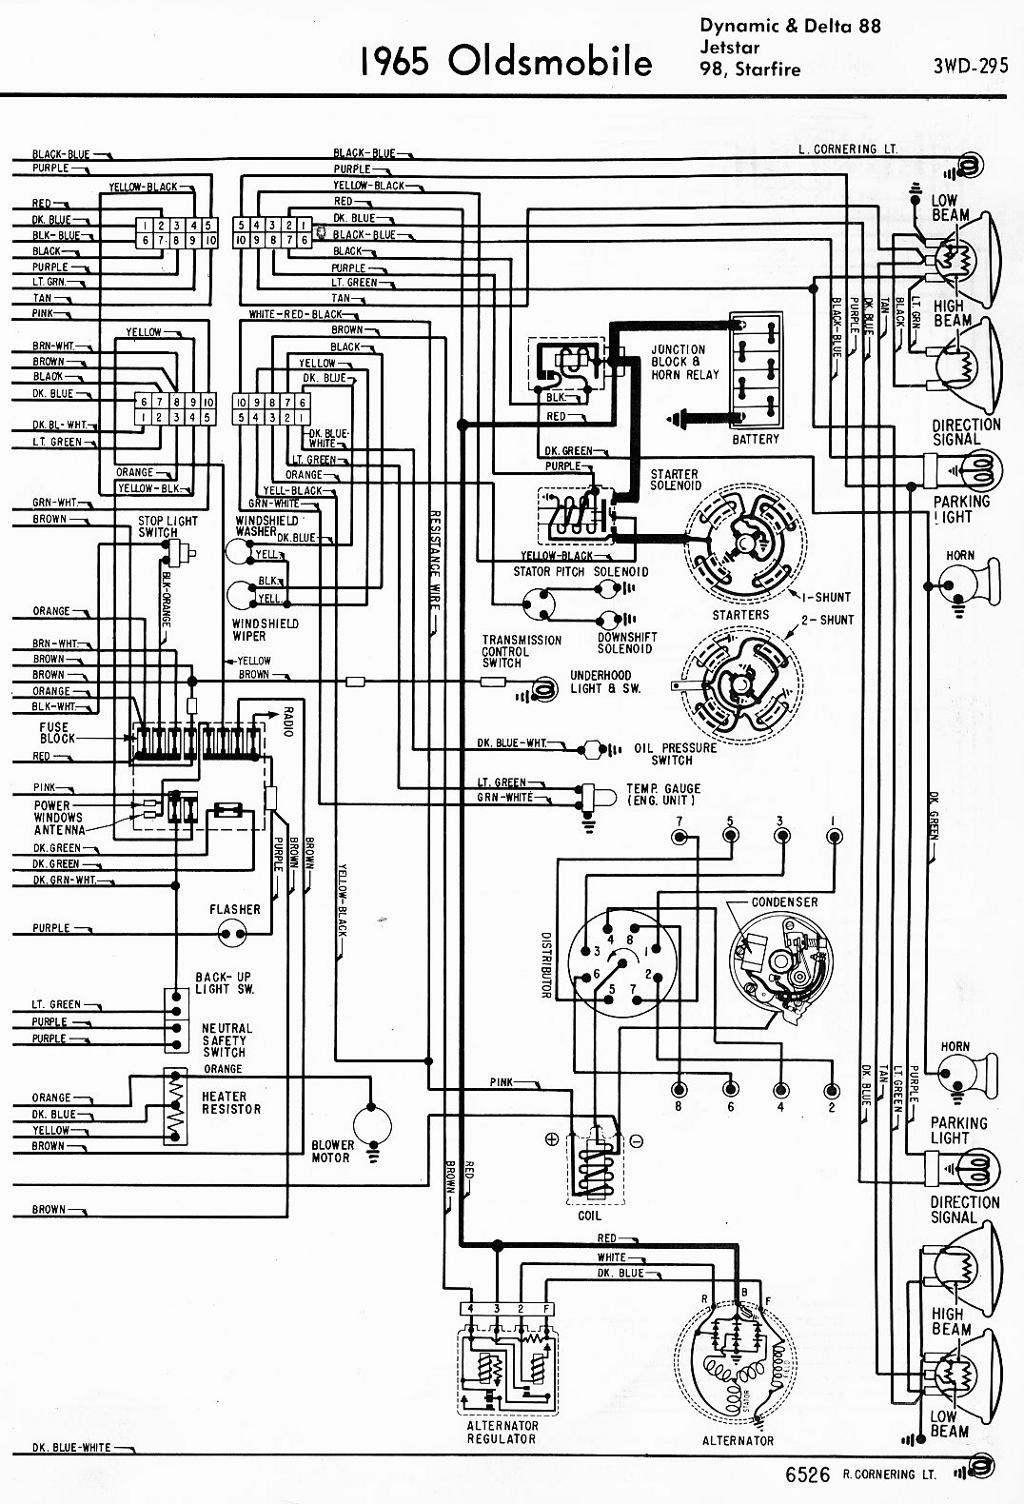 88 buick skylark wiring diagram  u2022 wiring diagram for free